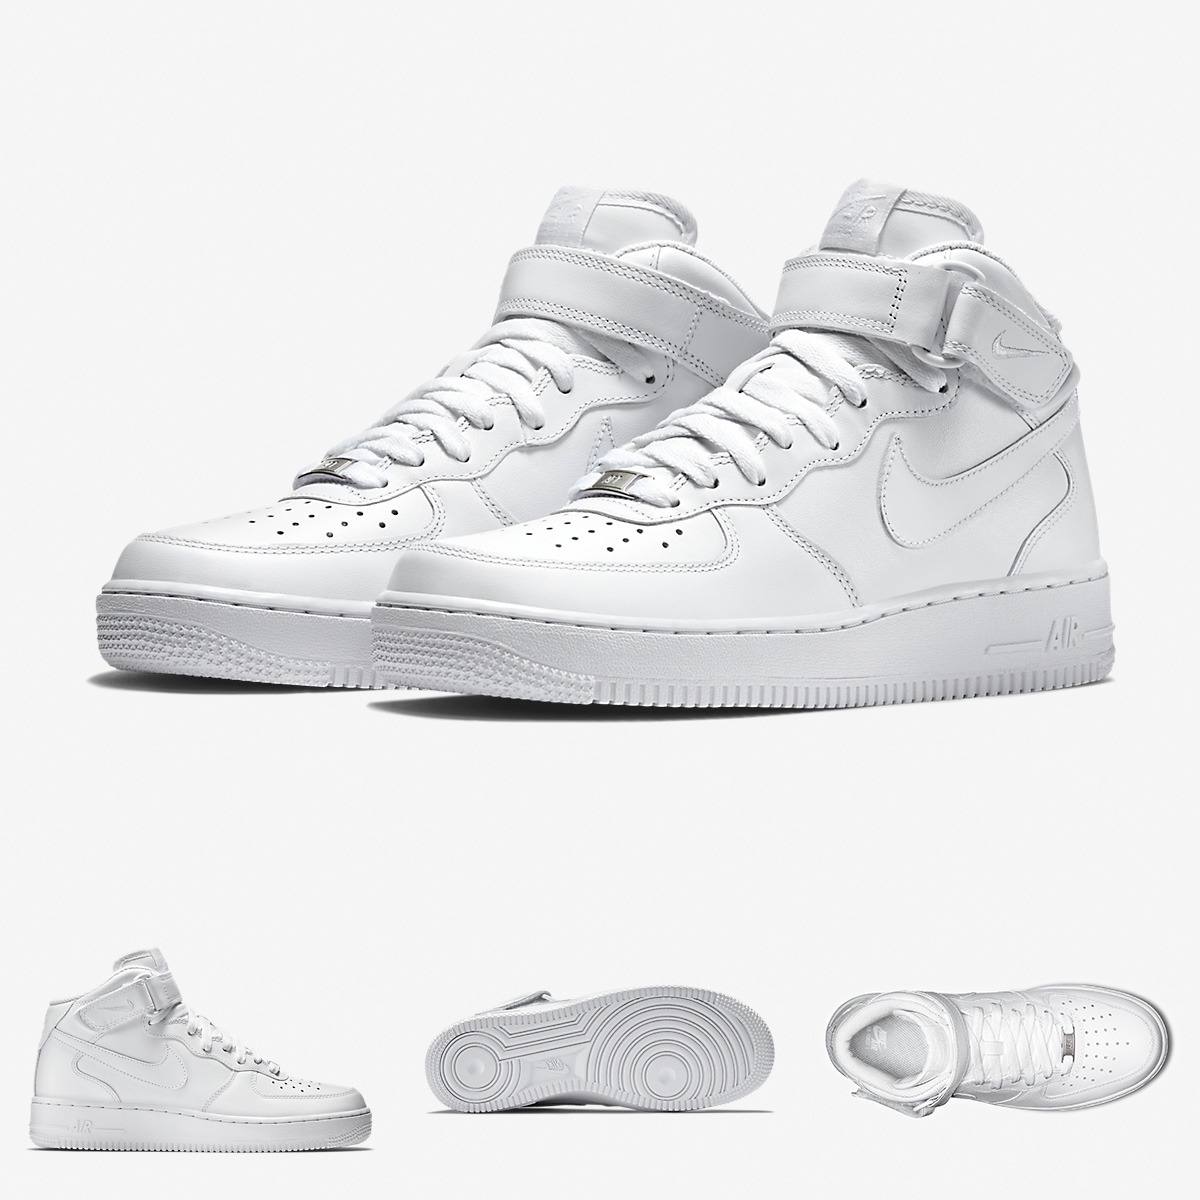 nike air force 1 blancas